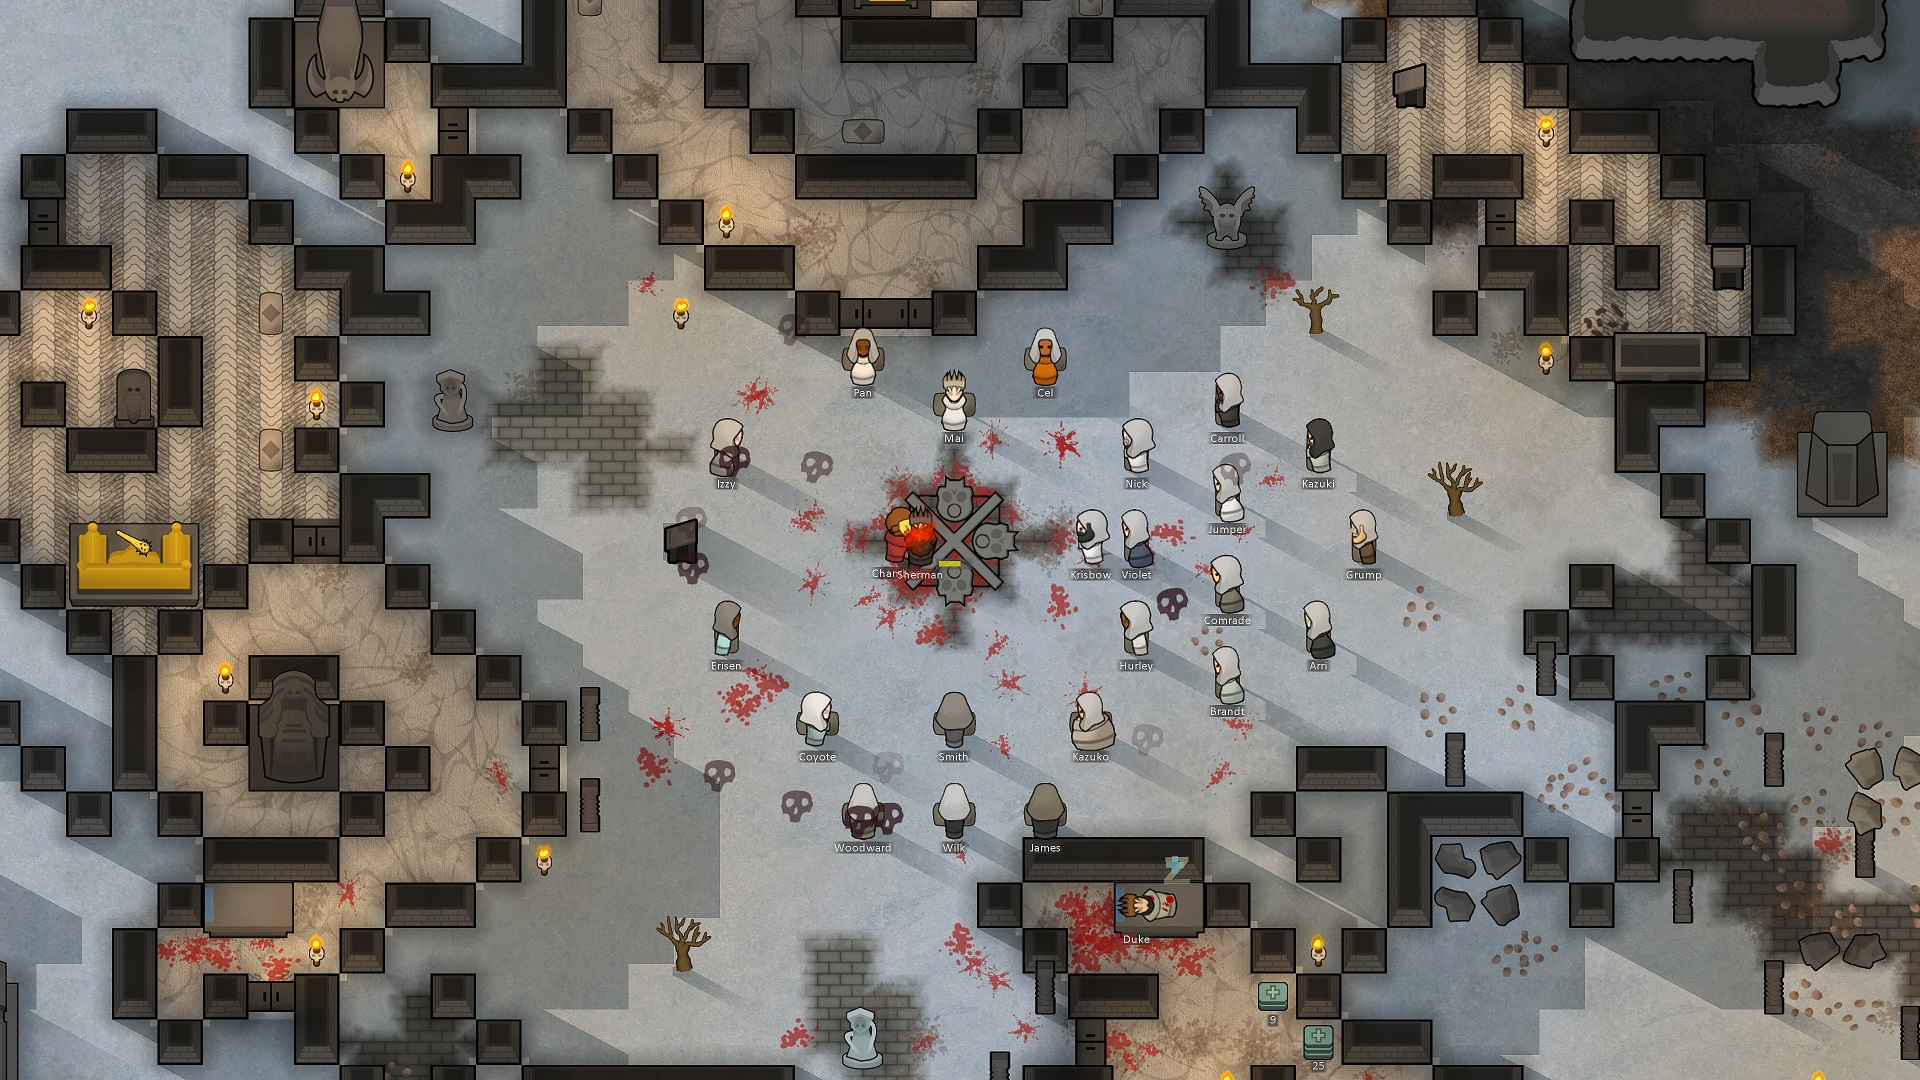 Rimworld will get a new expansion, major 1.3 update, and beards